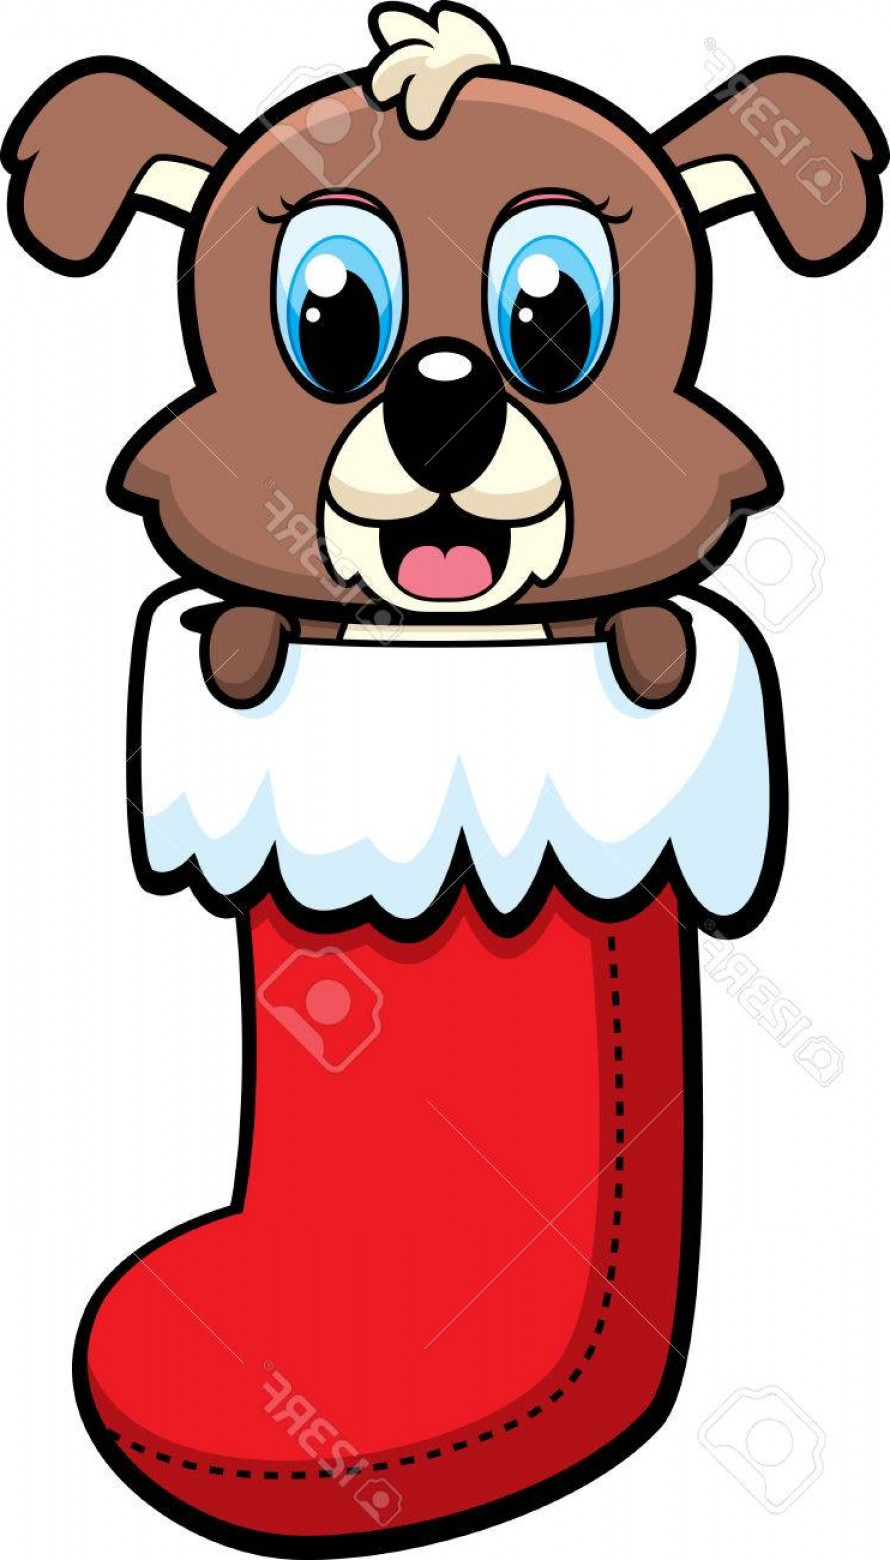 Stocking Hat Vector: Cute Photostock Vector A Happy Cartoon Puppy In A Christmas Stocking